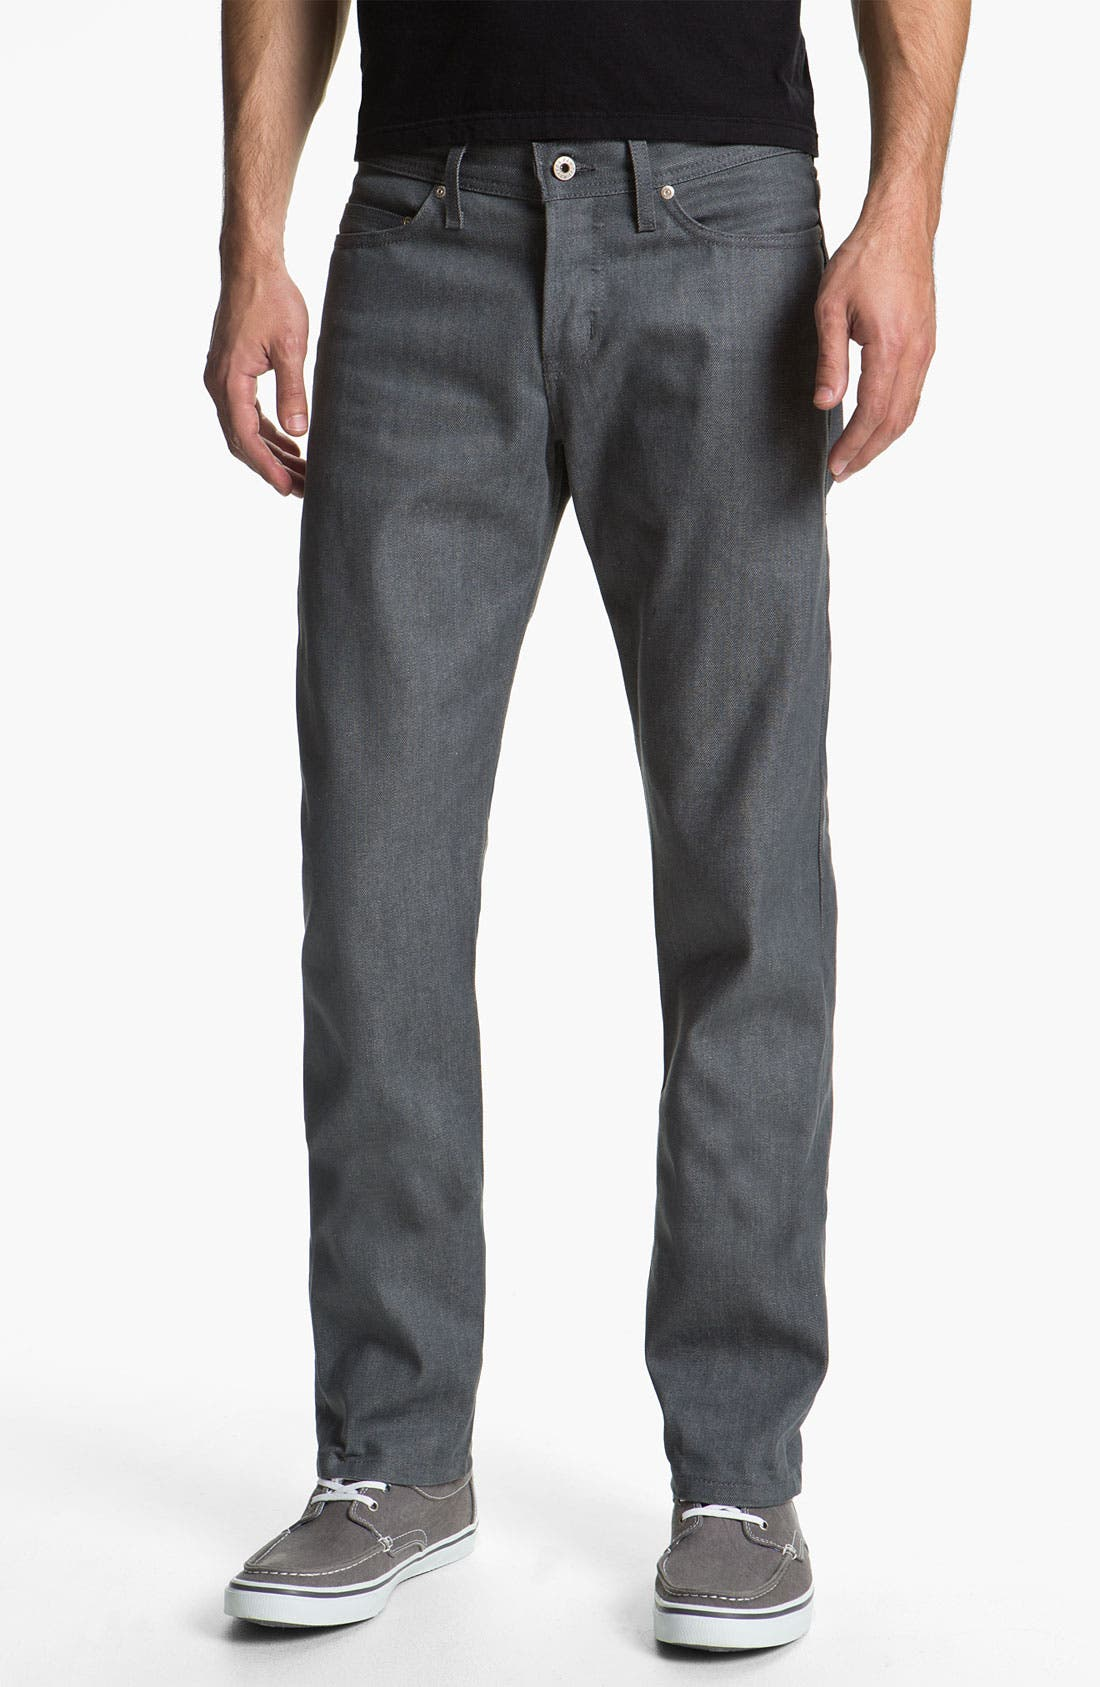 Main Image - Naked & Famous Denim Weird Guy Slim Fit Selvedge Jeans (Grey)